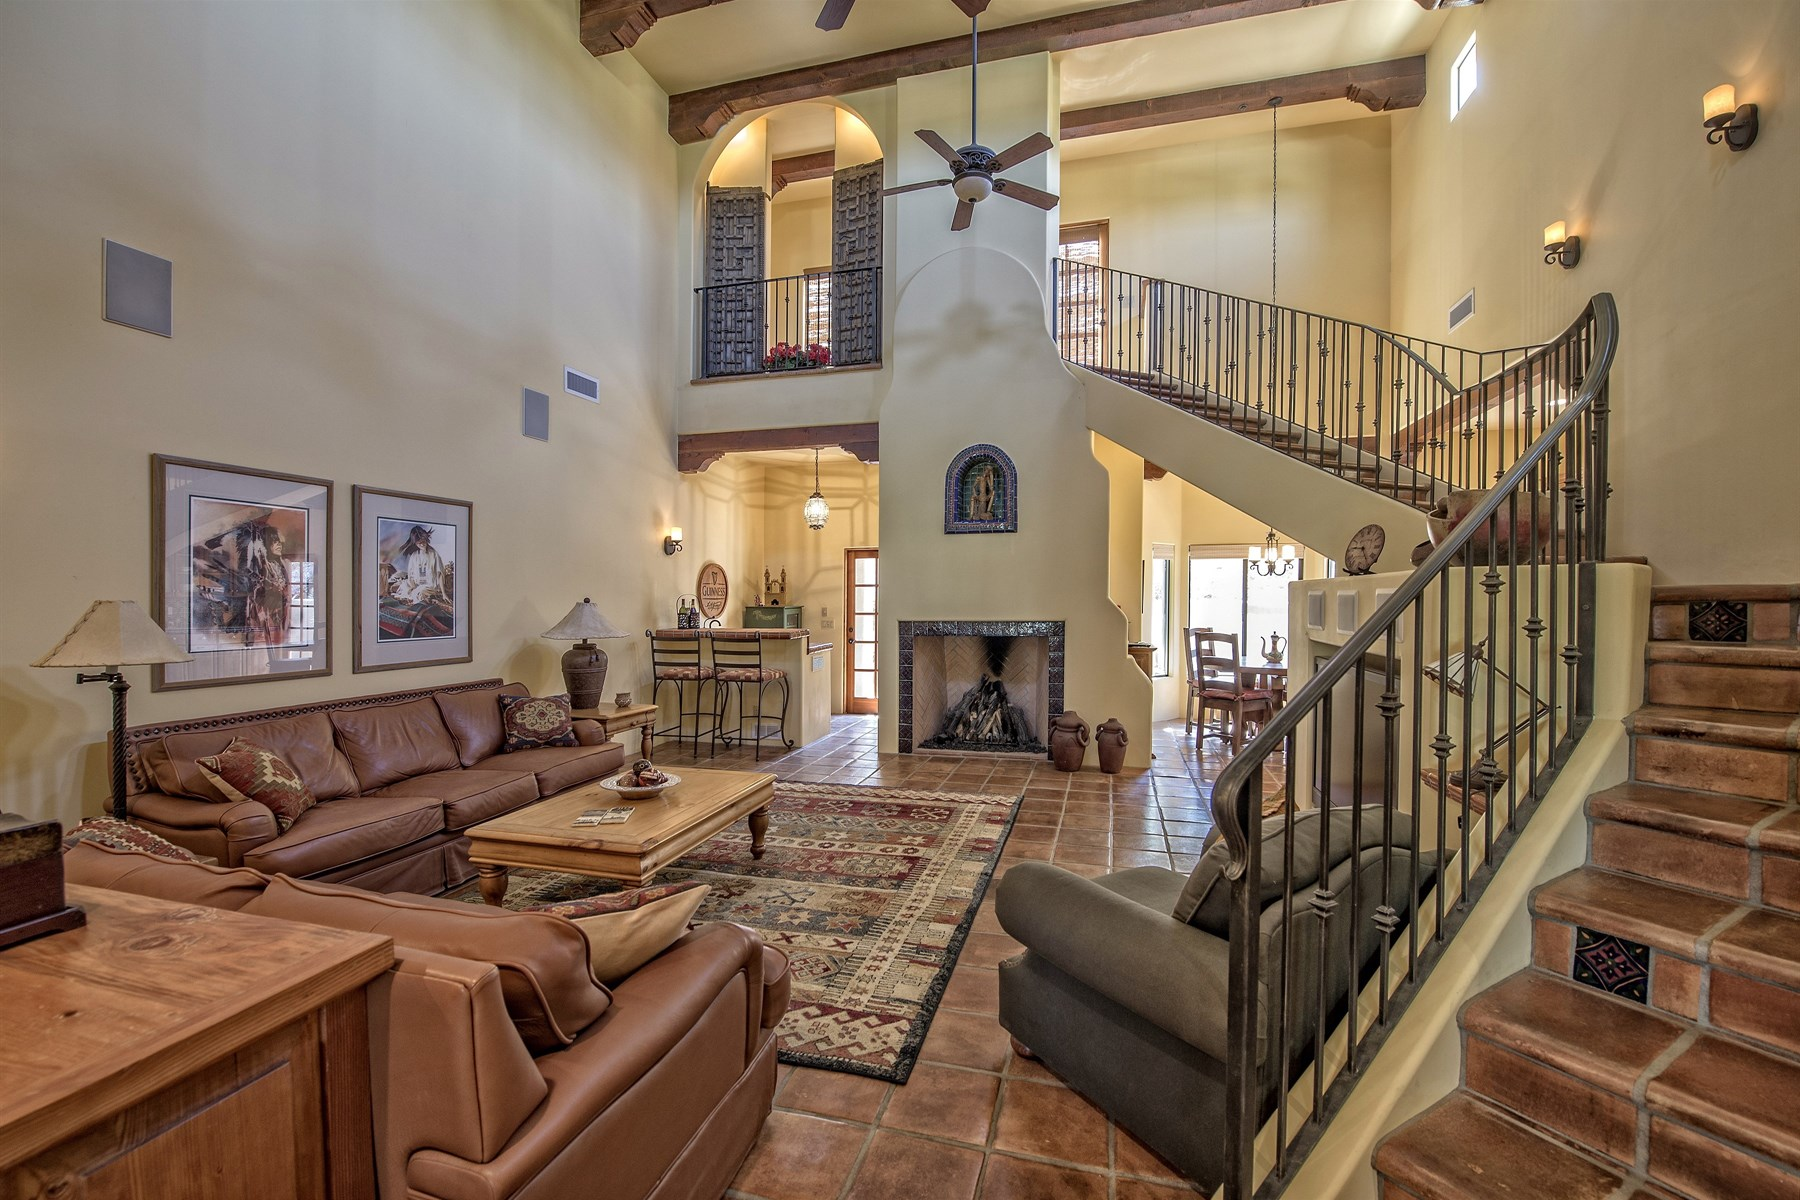 Property For Sale at Santa Fe style home beautifully situated on large private lot